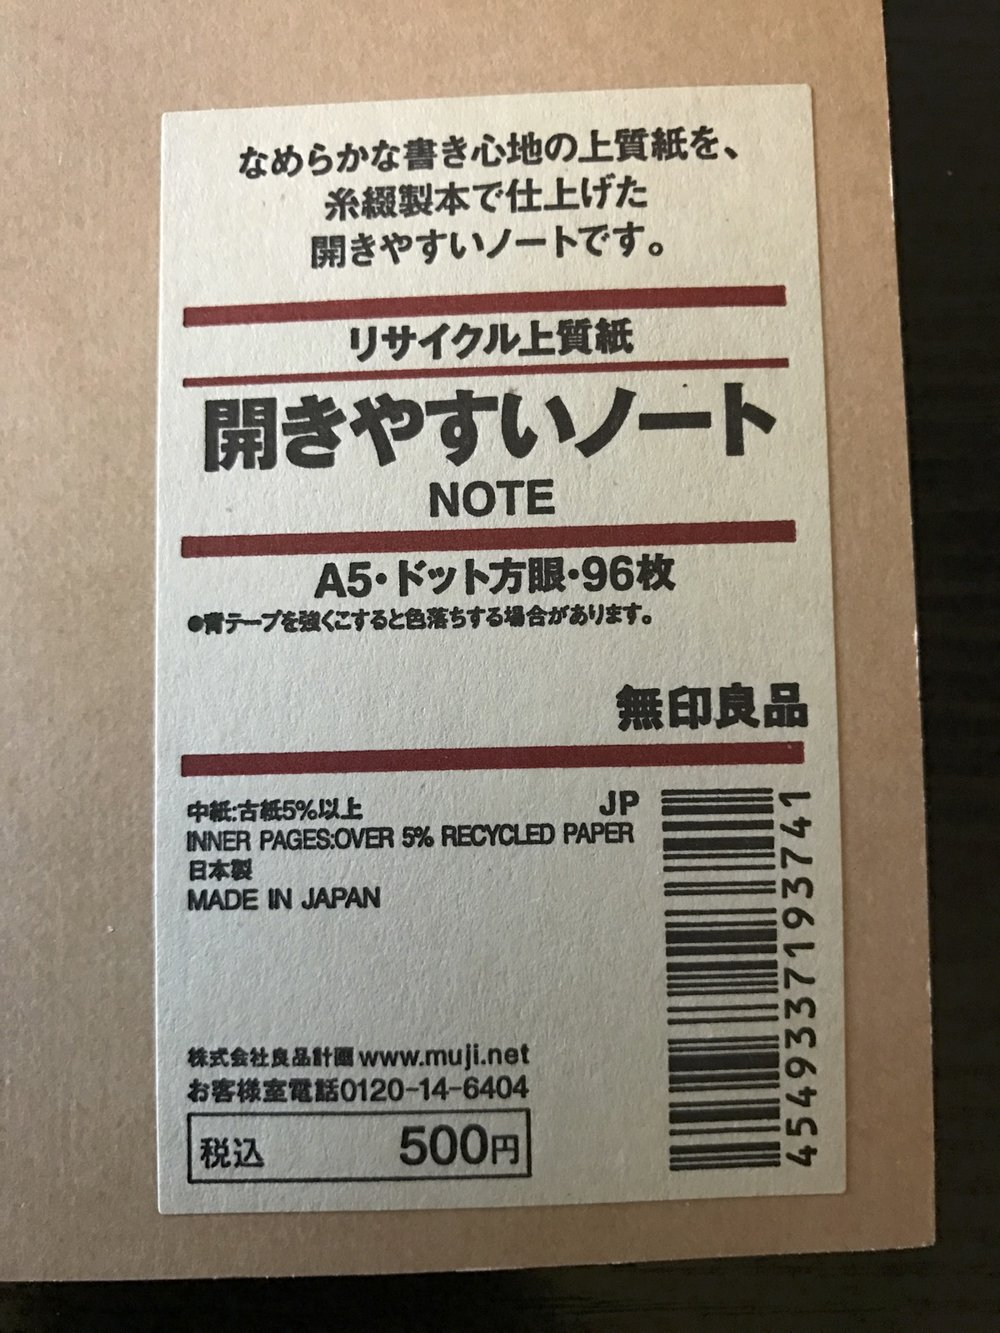 Most of the label is in Japanese. It seems to be pretty securely glued on there. I haven't tried peeling it off lest I damage the cover.